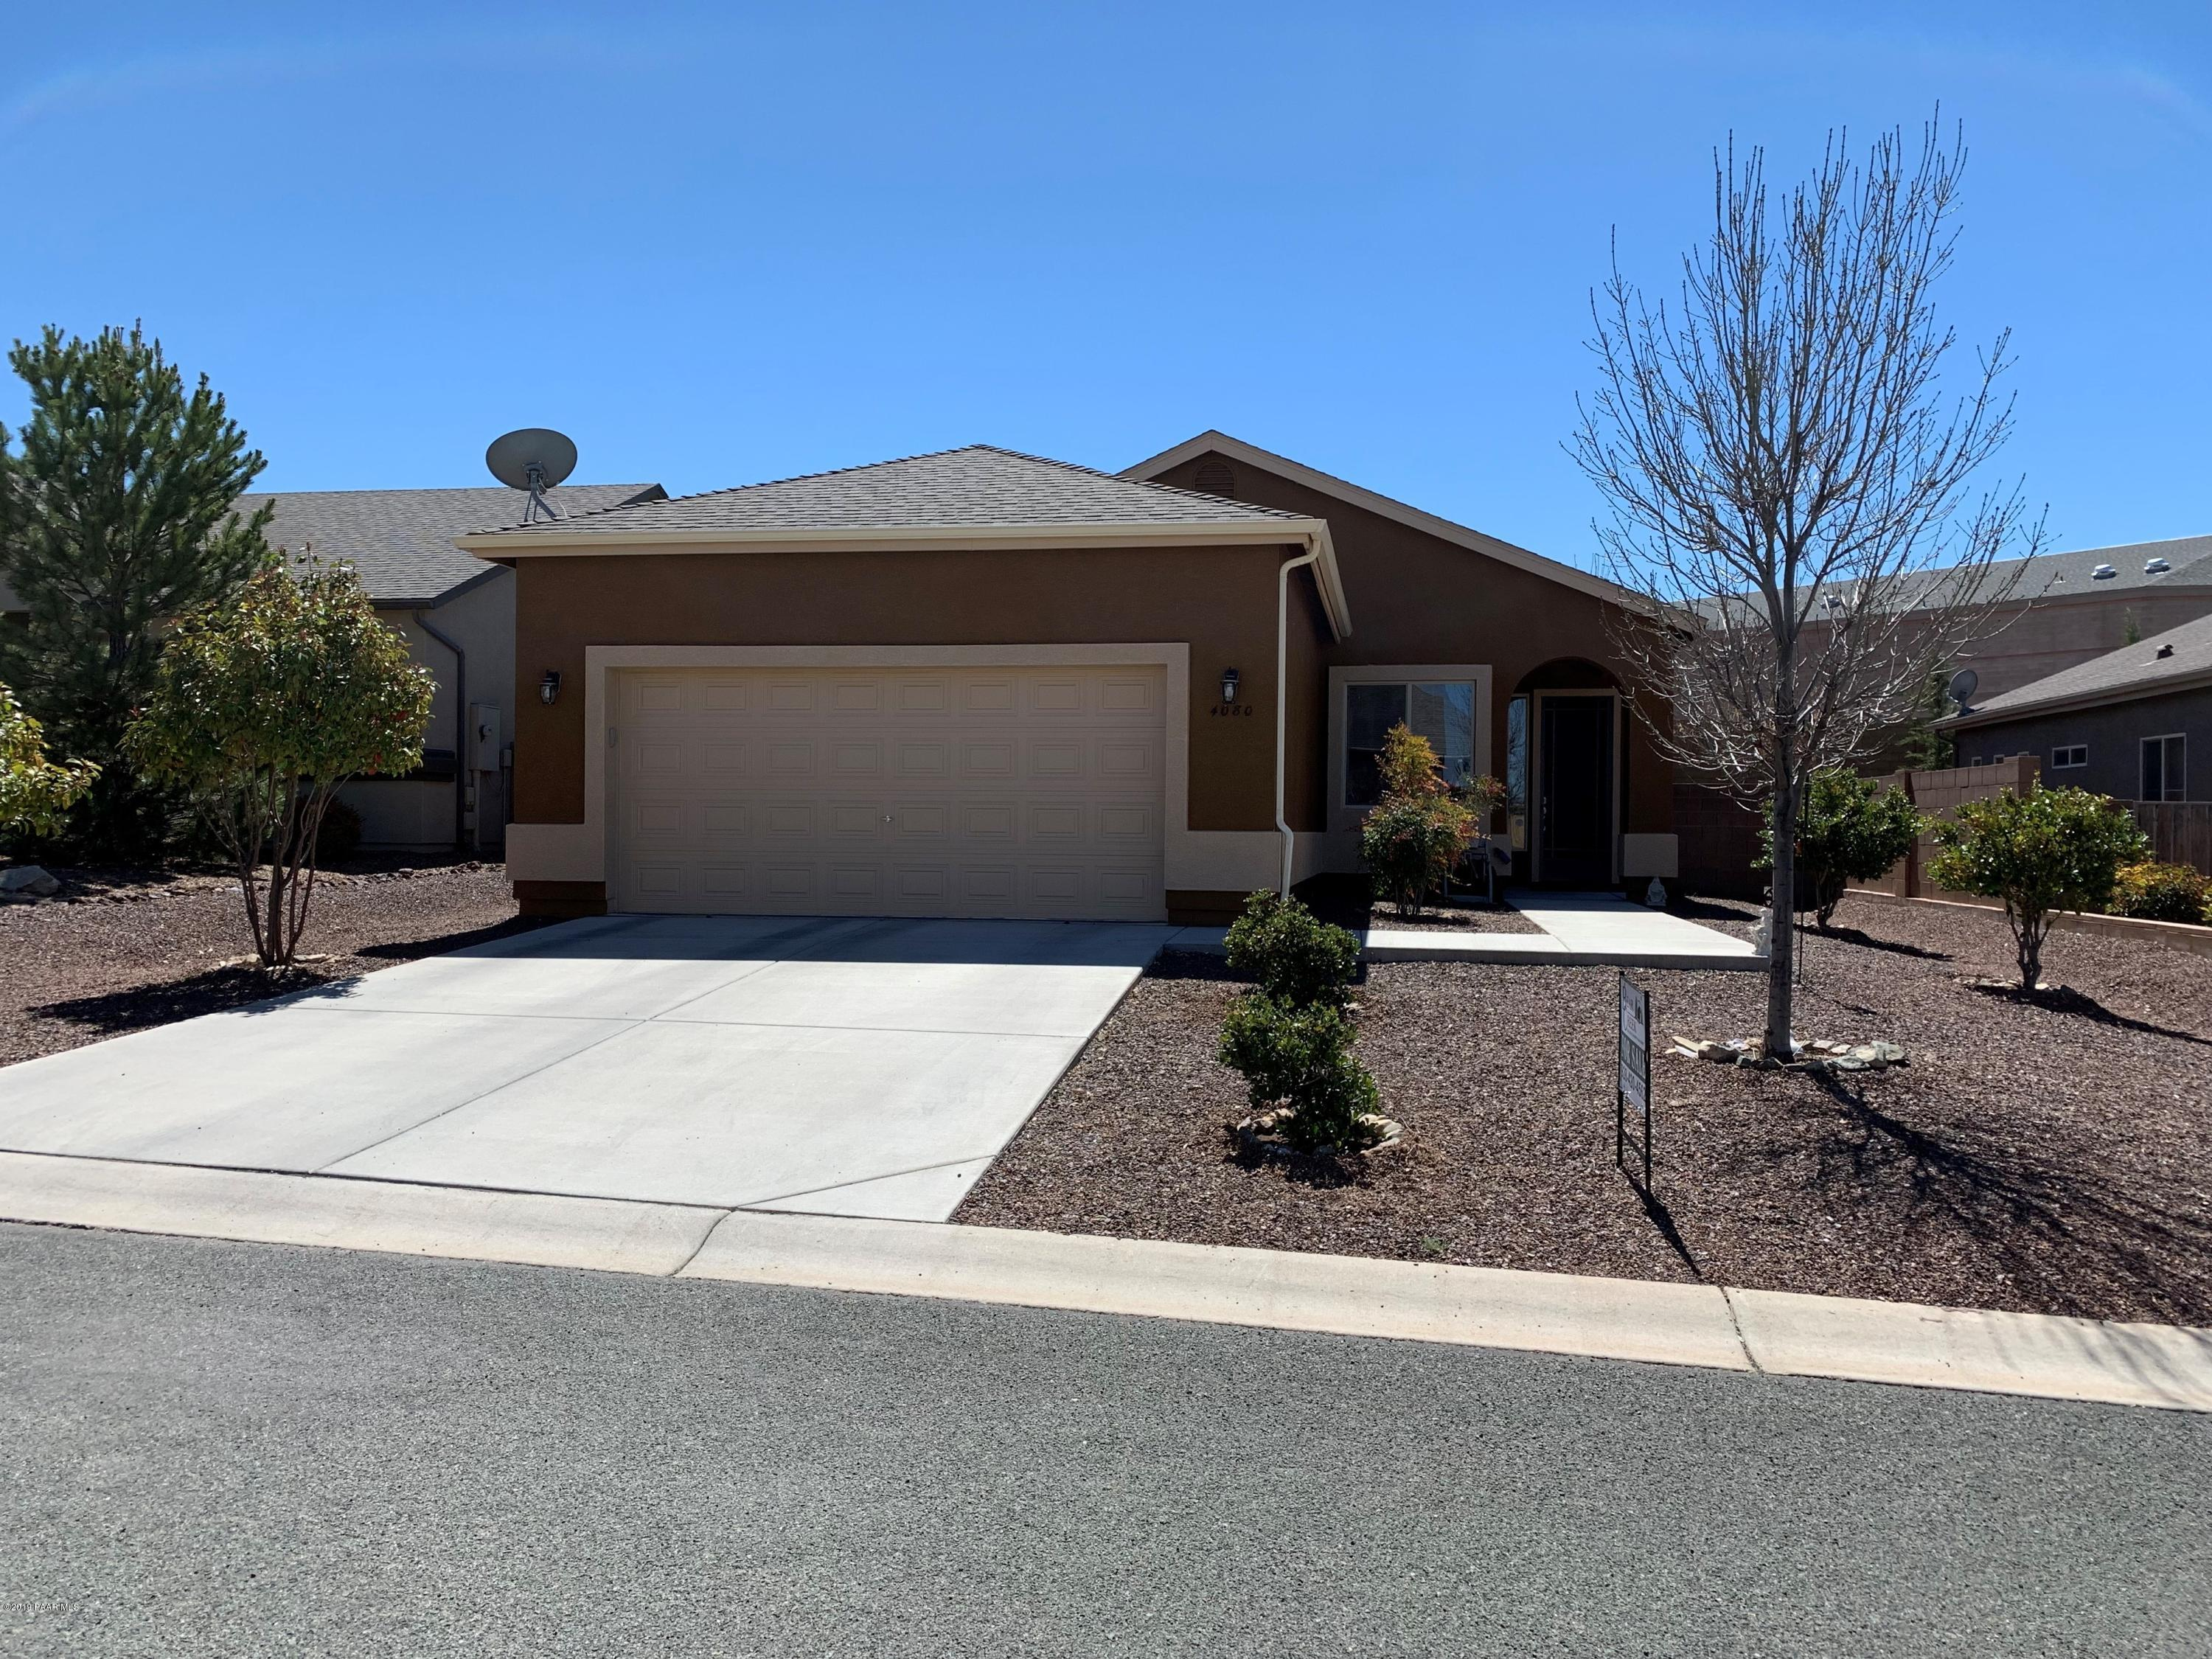 Photo of 4080 Providence, Prescott Valley, AZ 86314